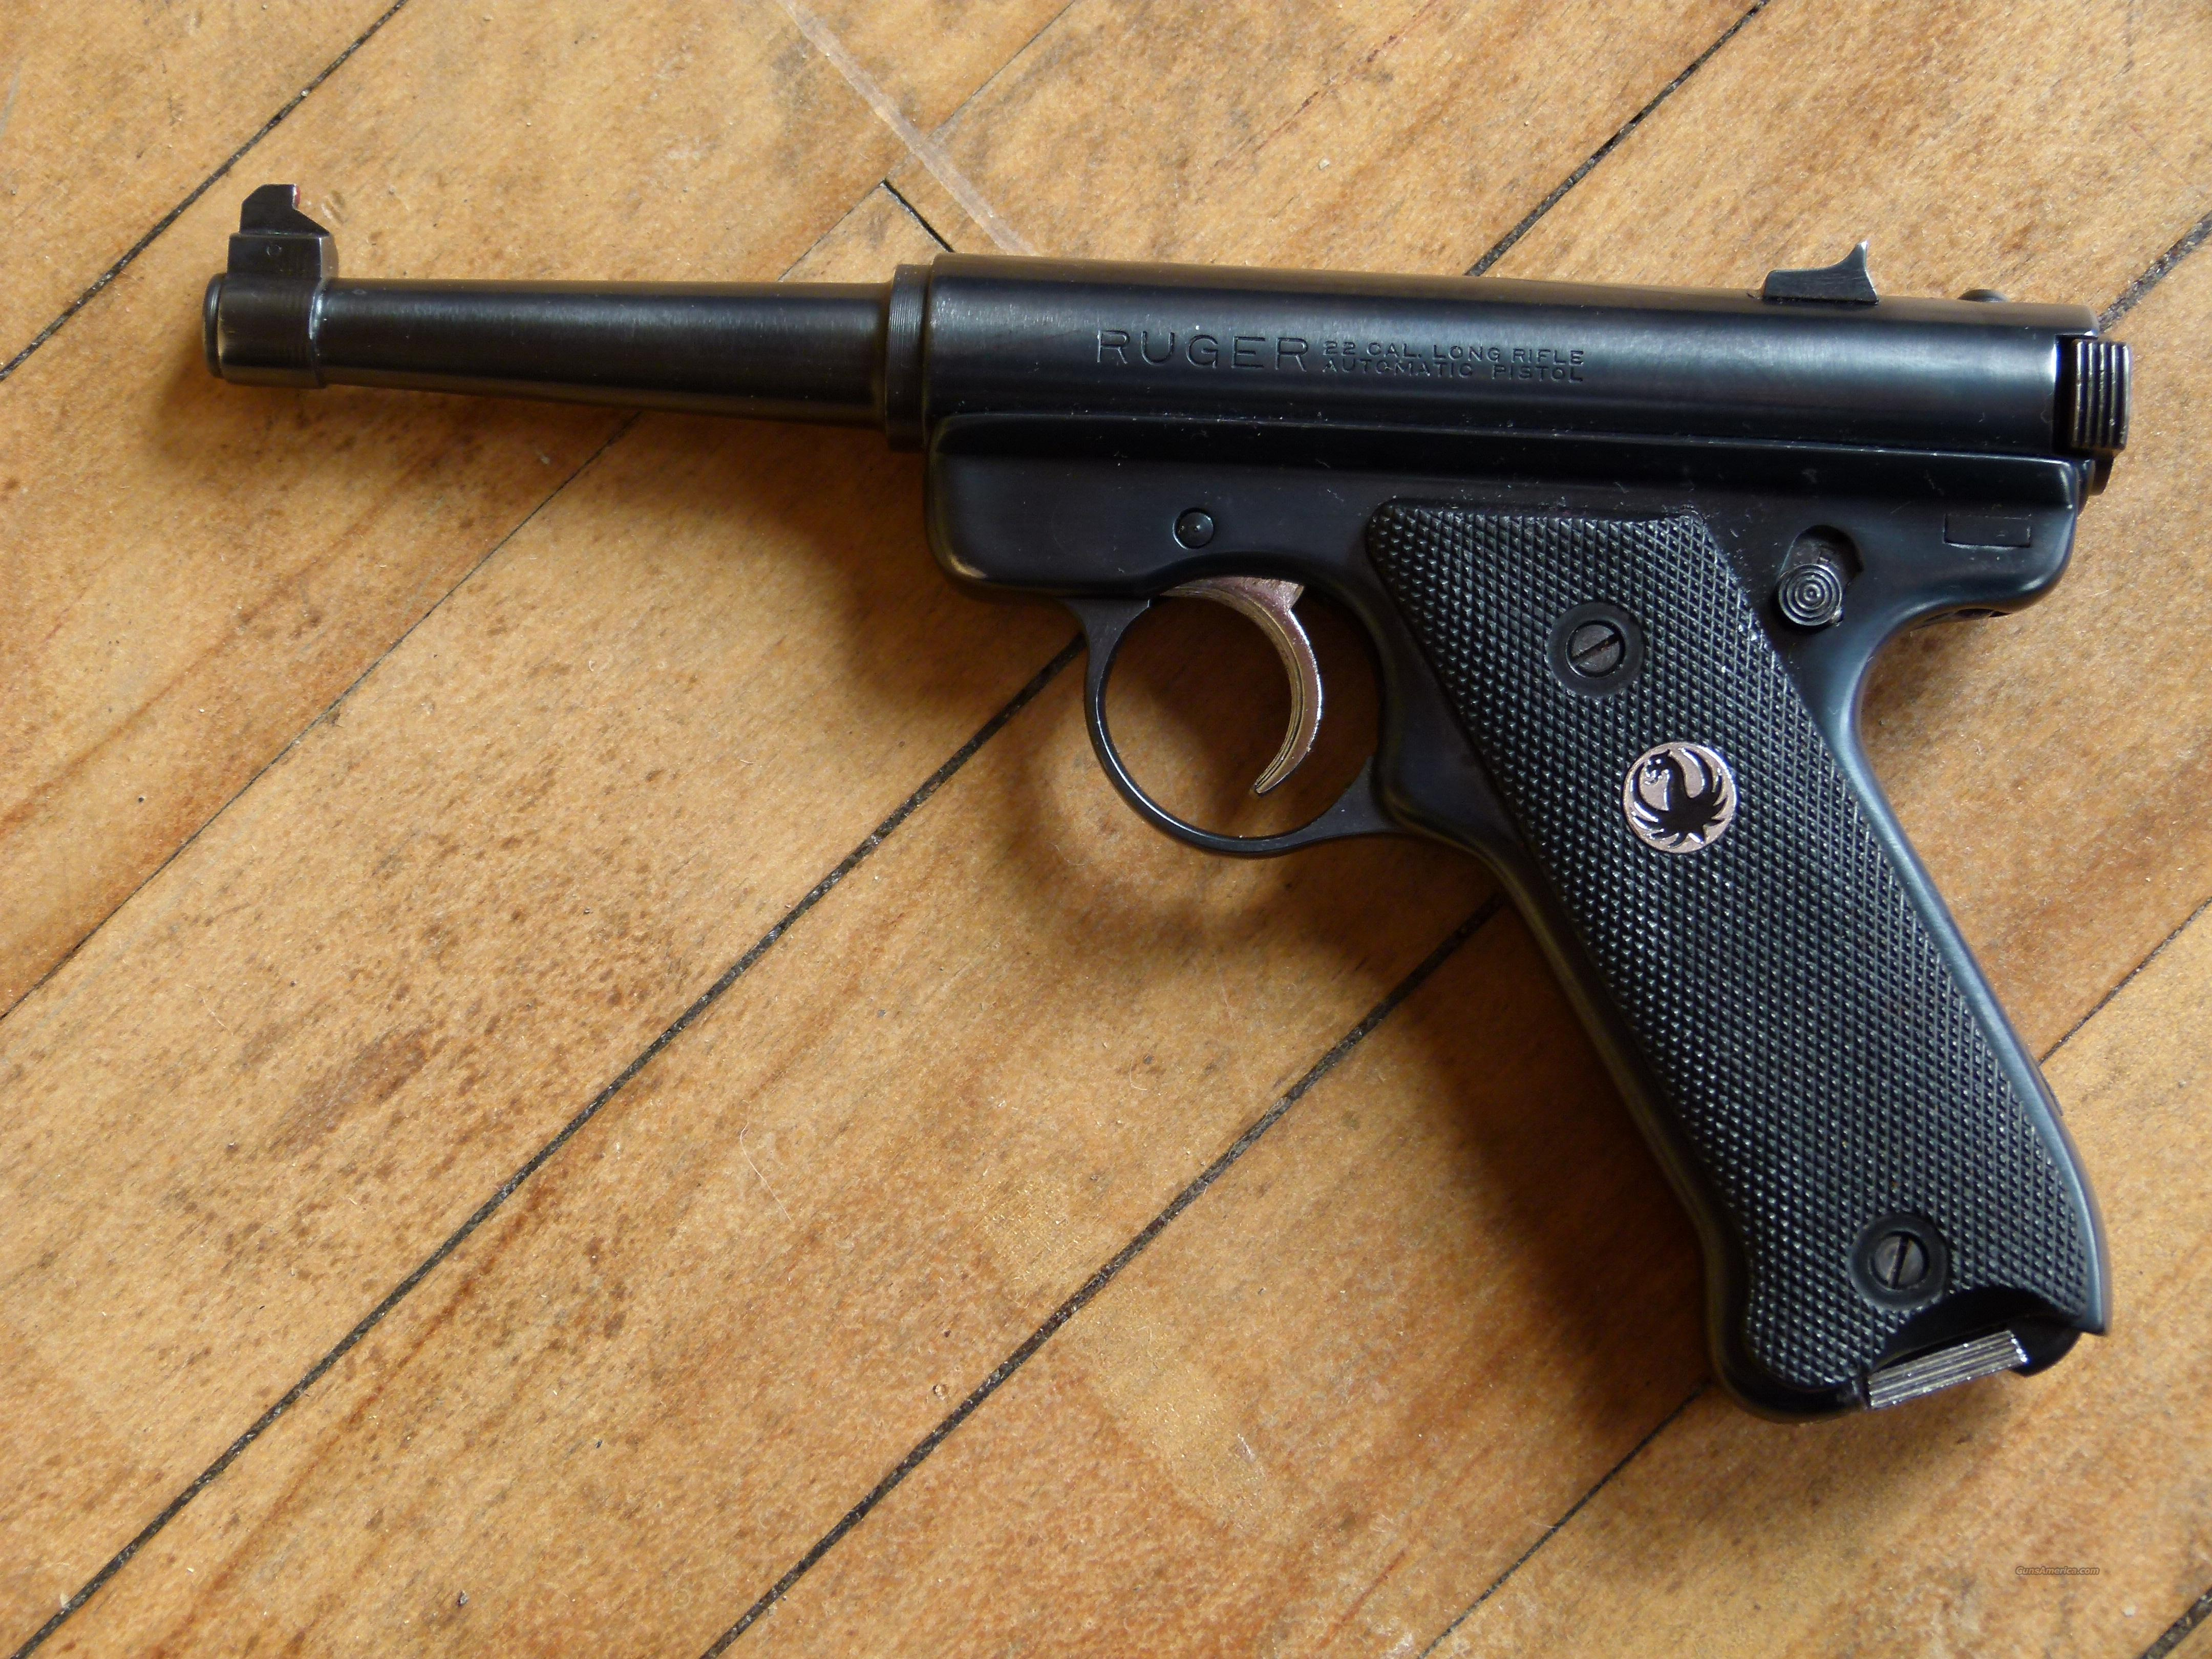 ruger standard 4 3/4 early 1960s  Guns > Pistols > Ruger Semi-Auto Pistols > Mark I & II Family